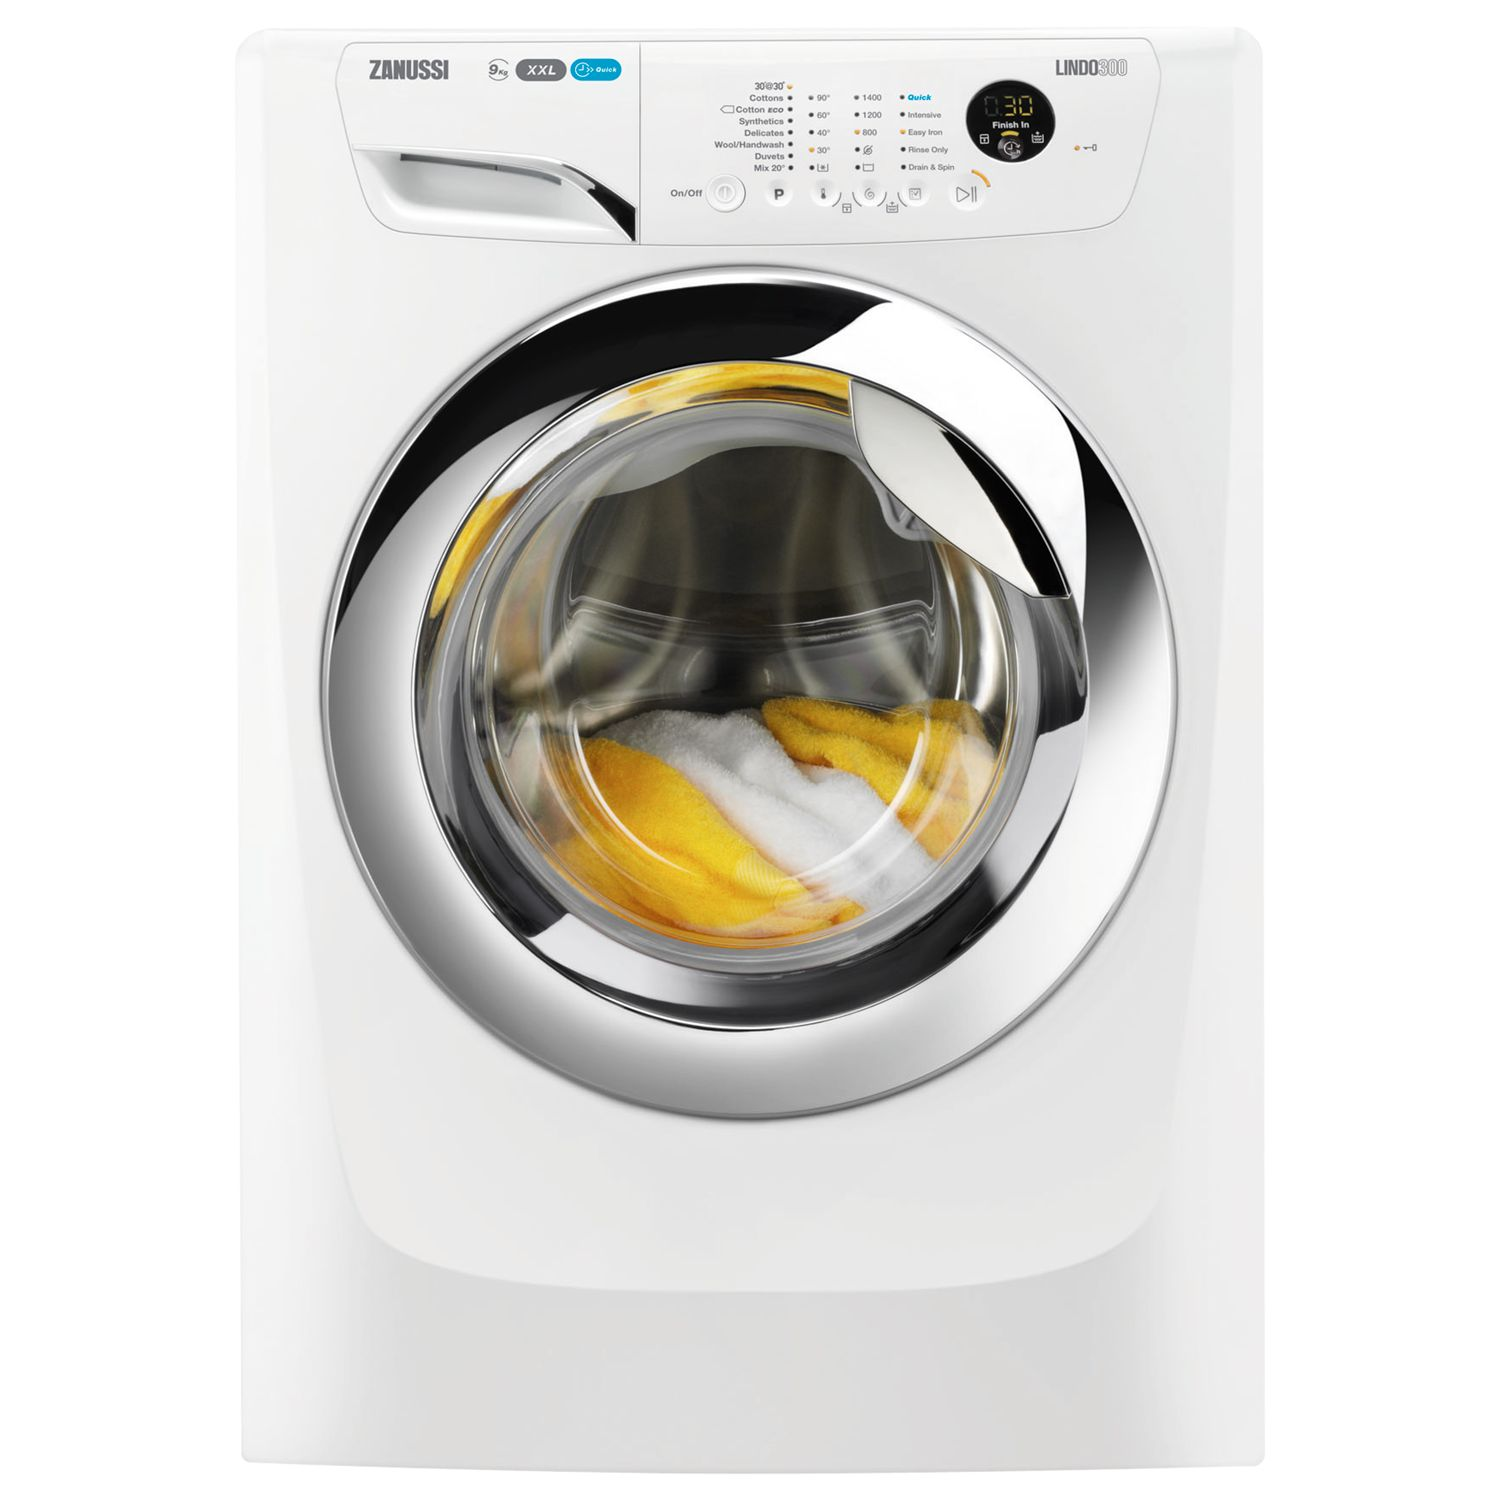 Zanussi Zanussi ZWF91483WH Washing Machine, 9kg Load, A+++ Energy Rating, 1400rpm Spin, White